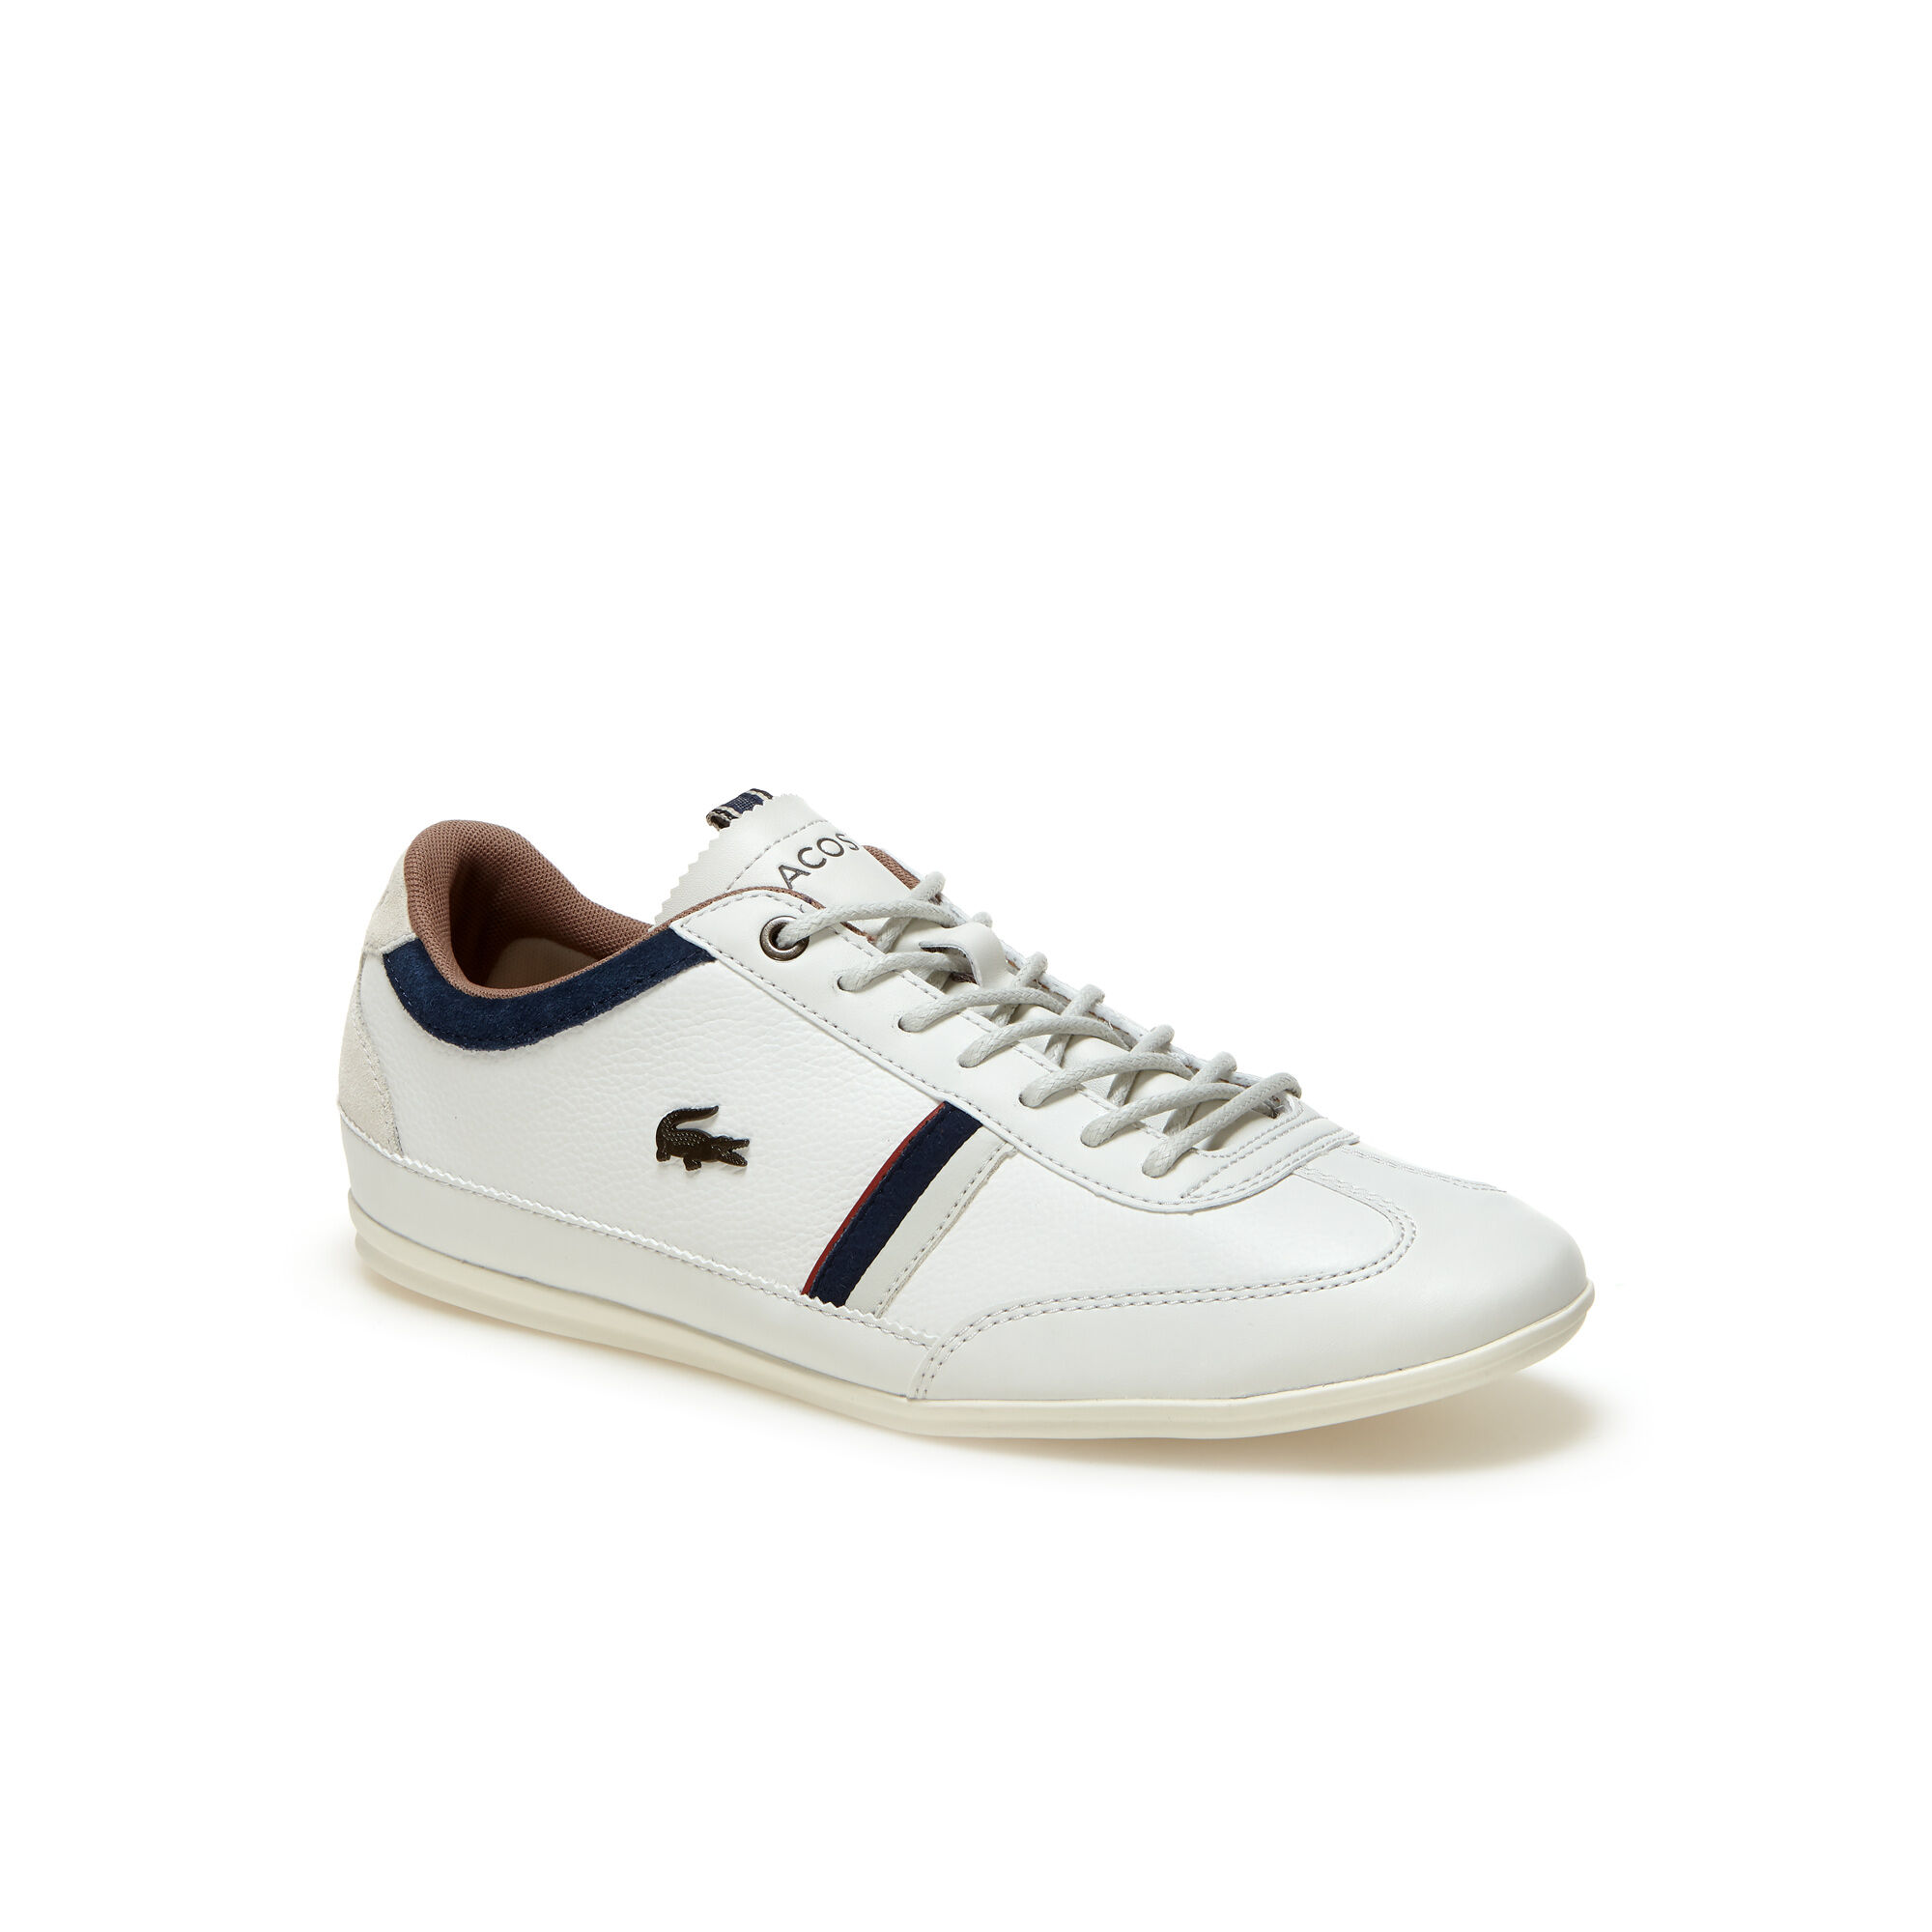 lacoste shoes formal batam tunisie